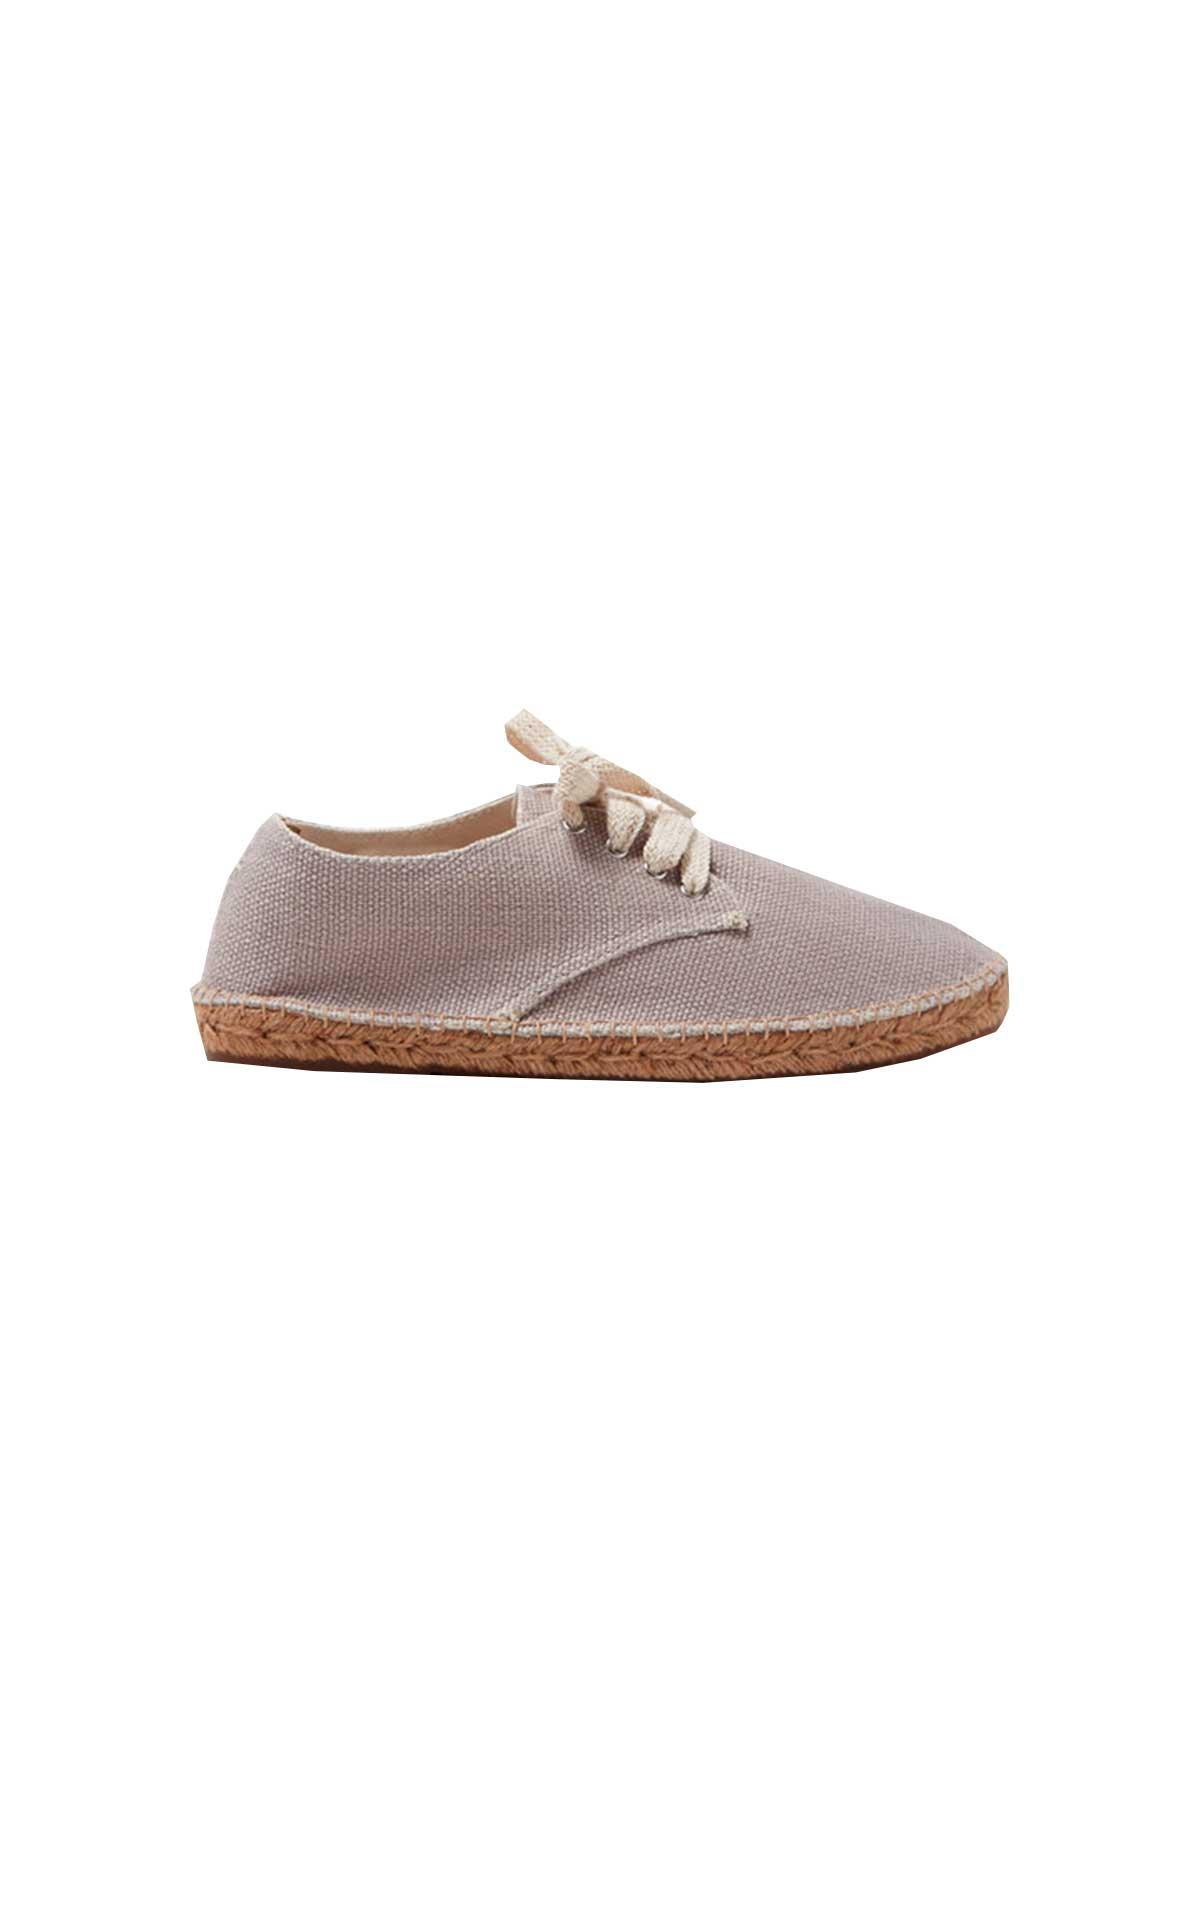 Grey espadrilles for man Adolfo Dominguez